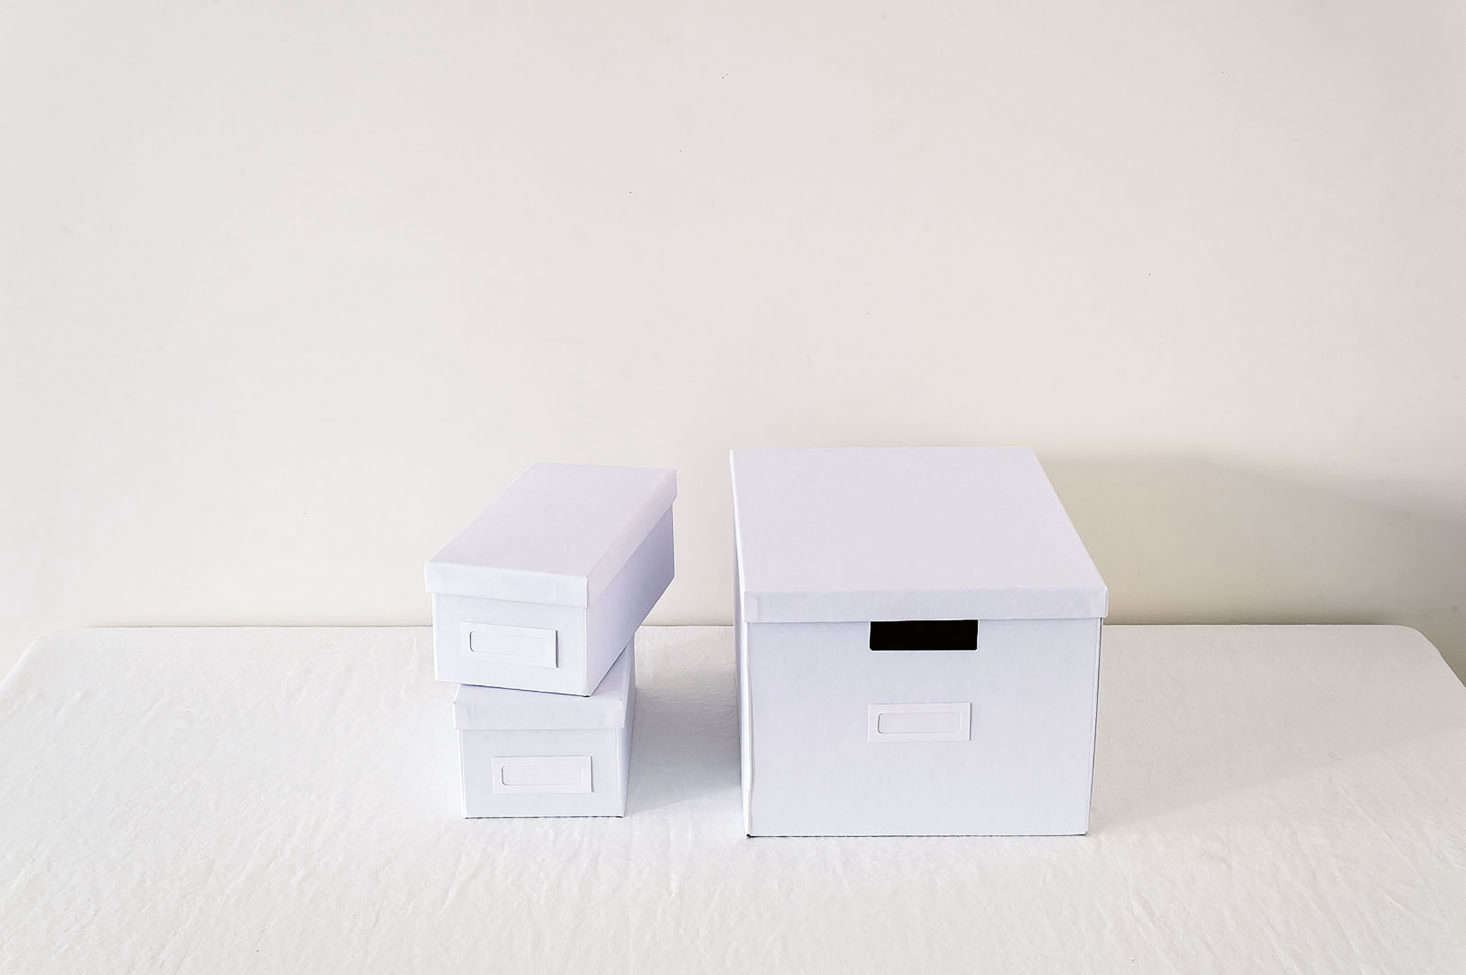 Ikea's Tjena collection of boxes includes a shoebox-size container with a lid ($1.99).